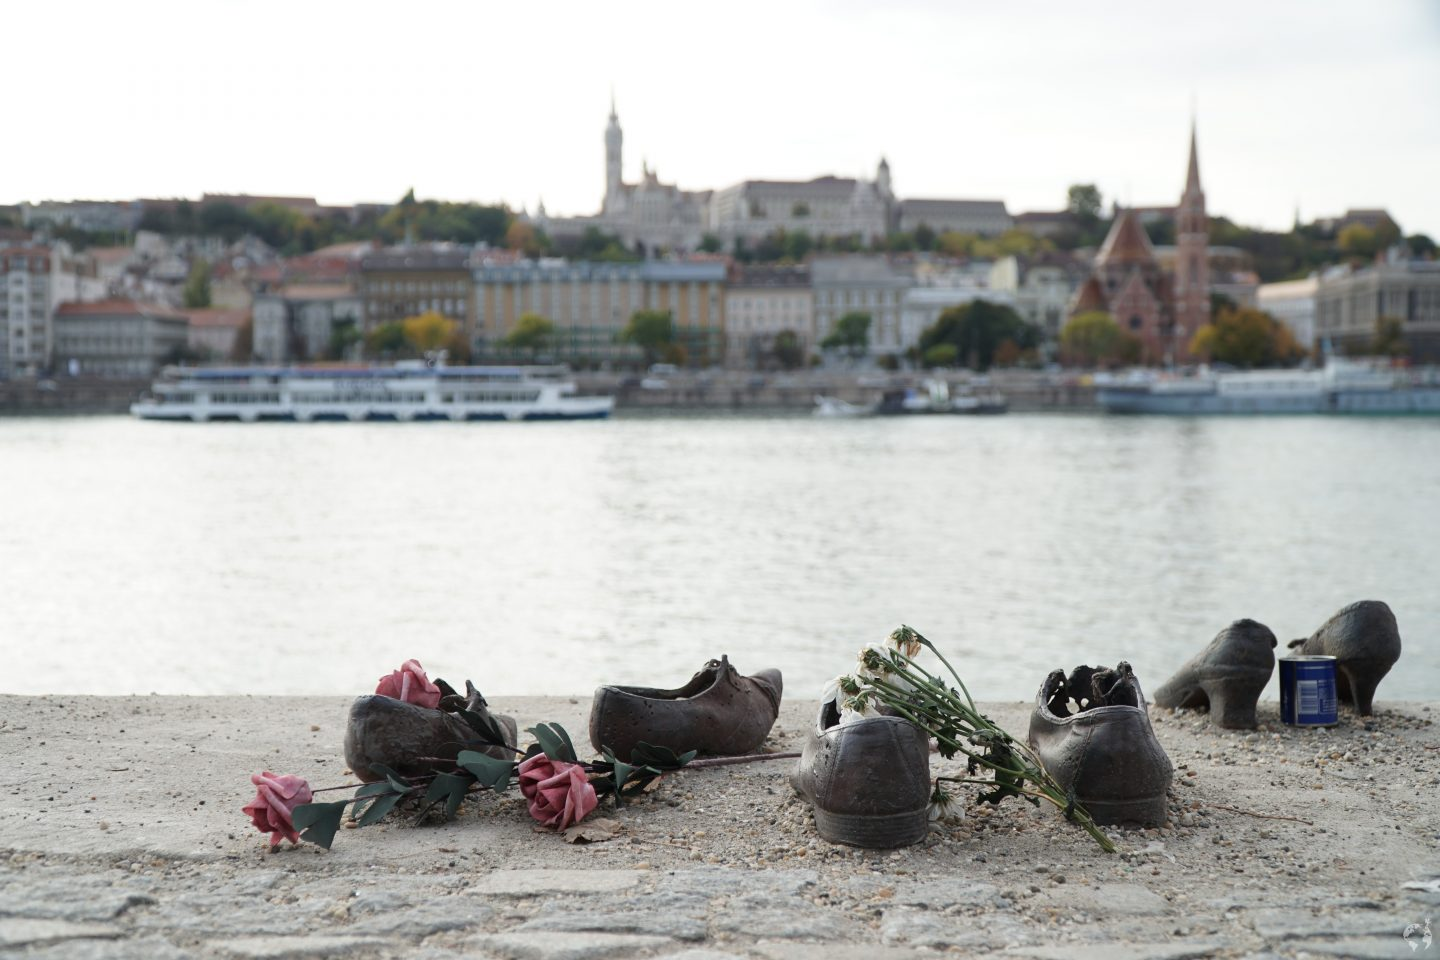 where is shoes danube bank memorial